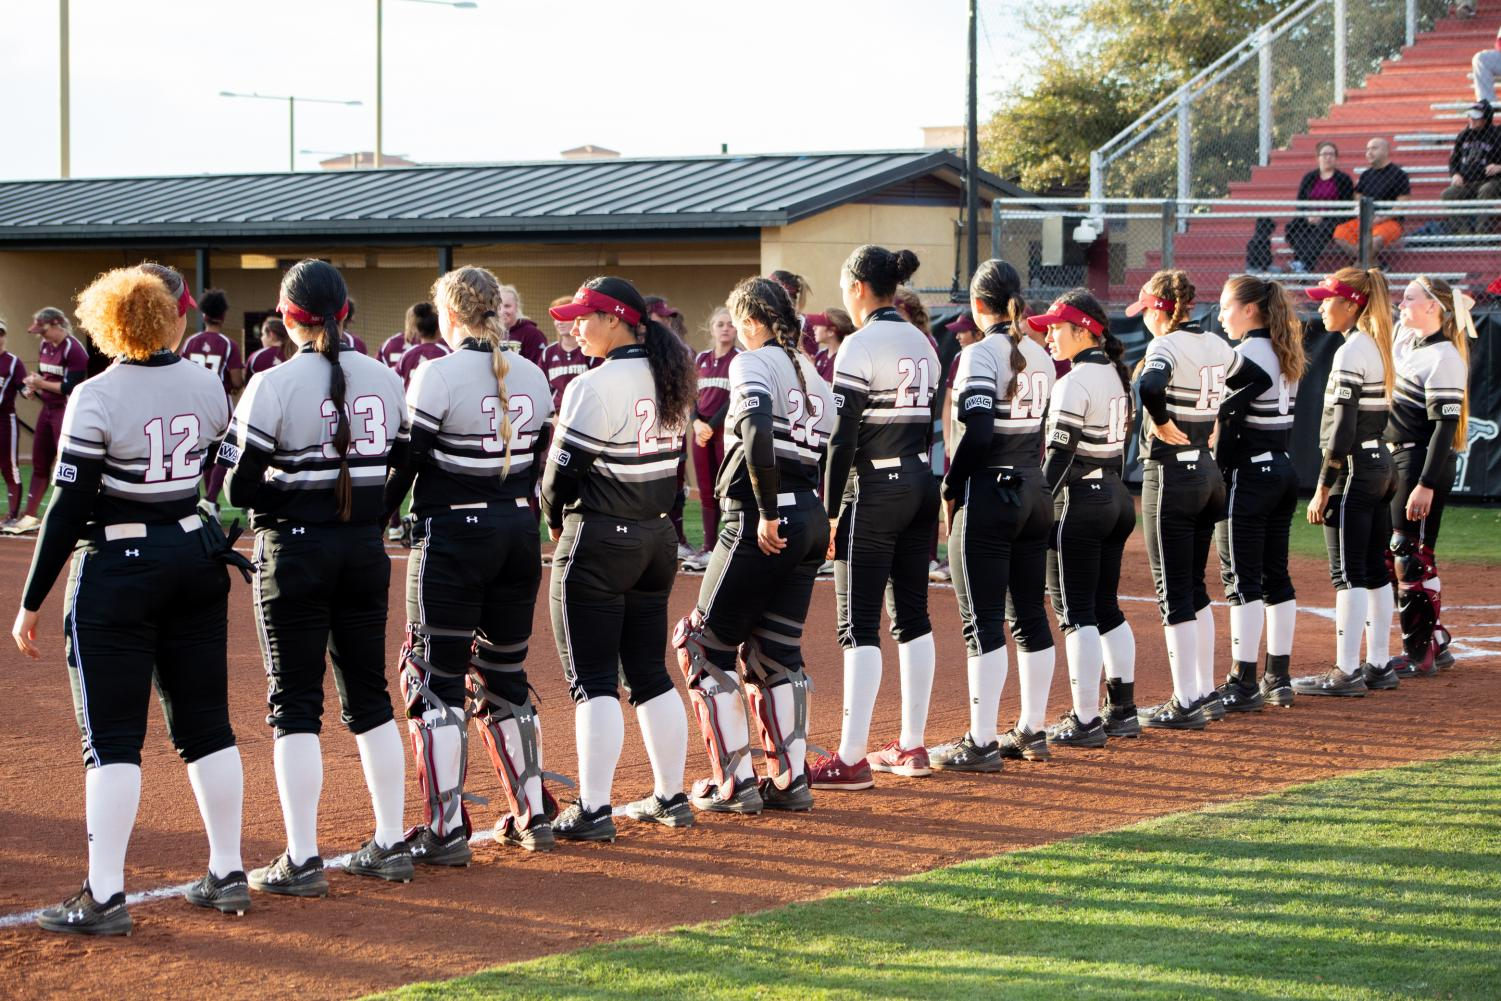 The Aggies lose just three seniors from the 2019 squad, setting themselves up for another successful campaign under Kathy Rodolph.